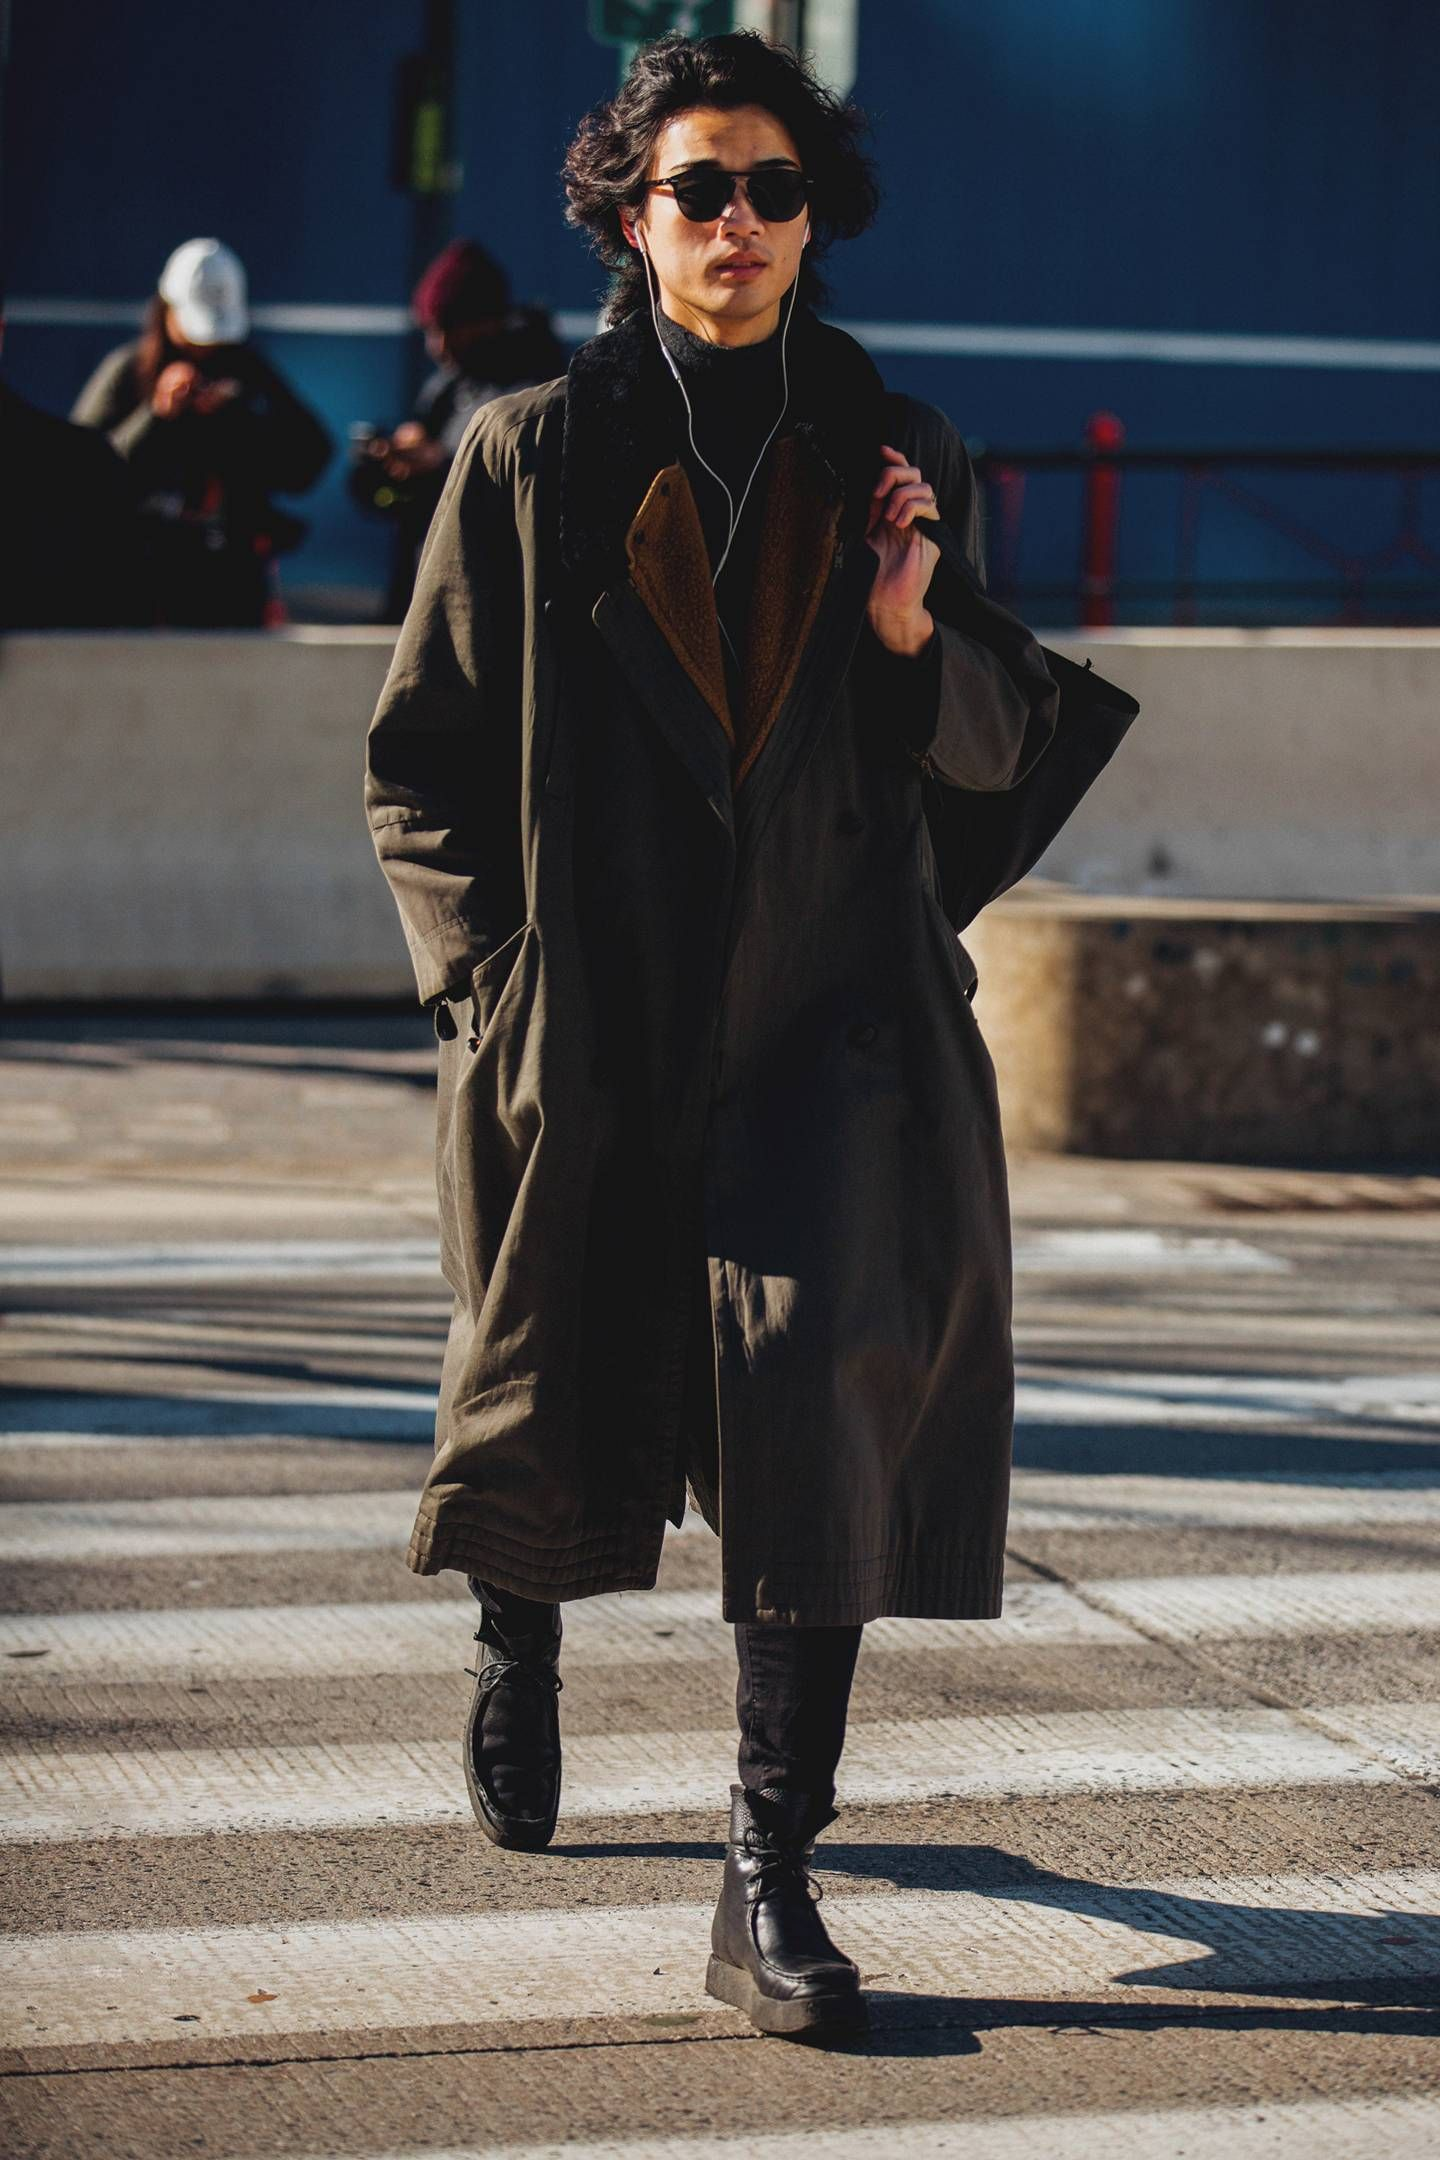 The Best Street Style From The New York Menswear Shows